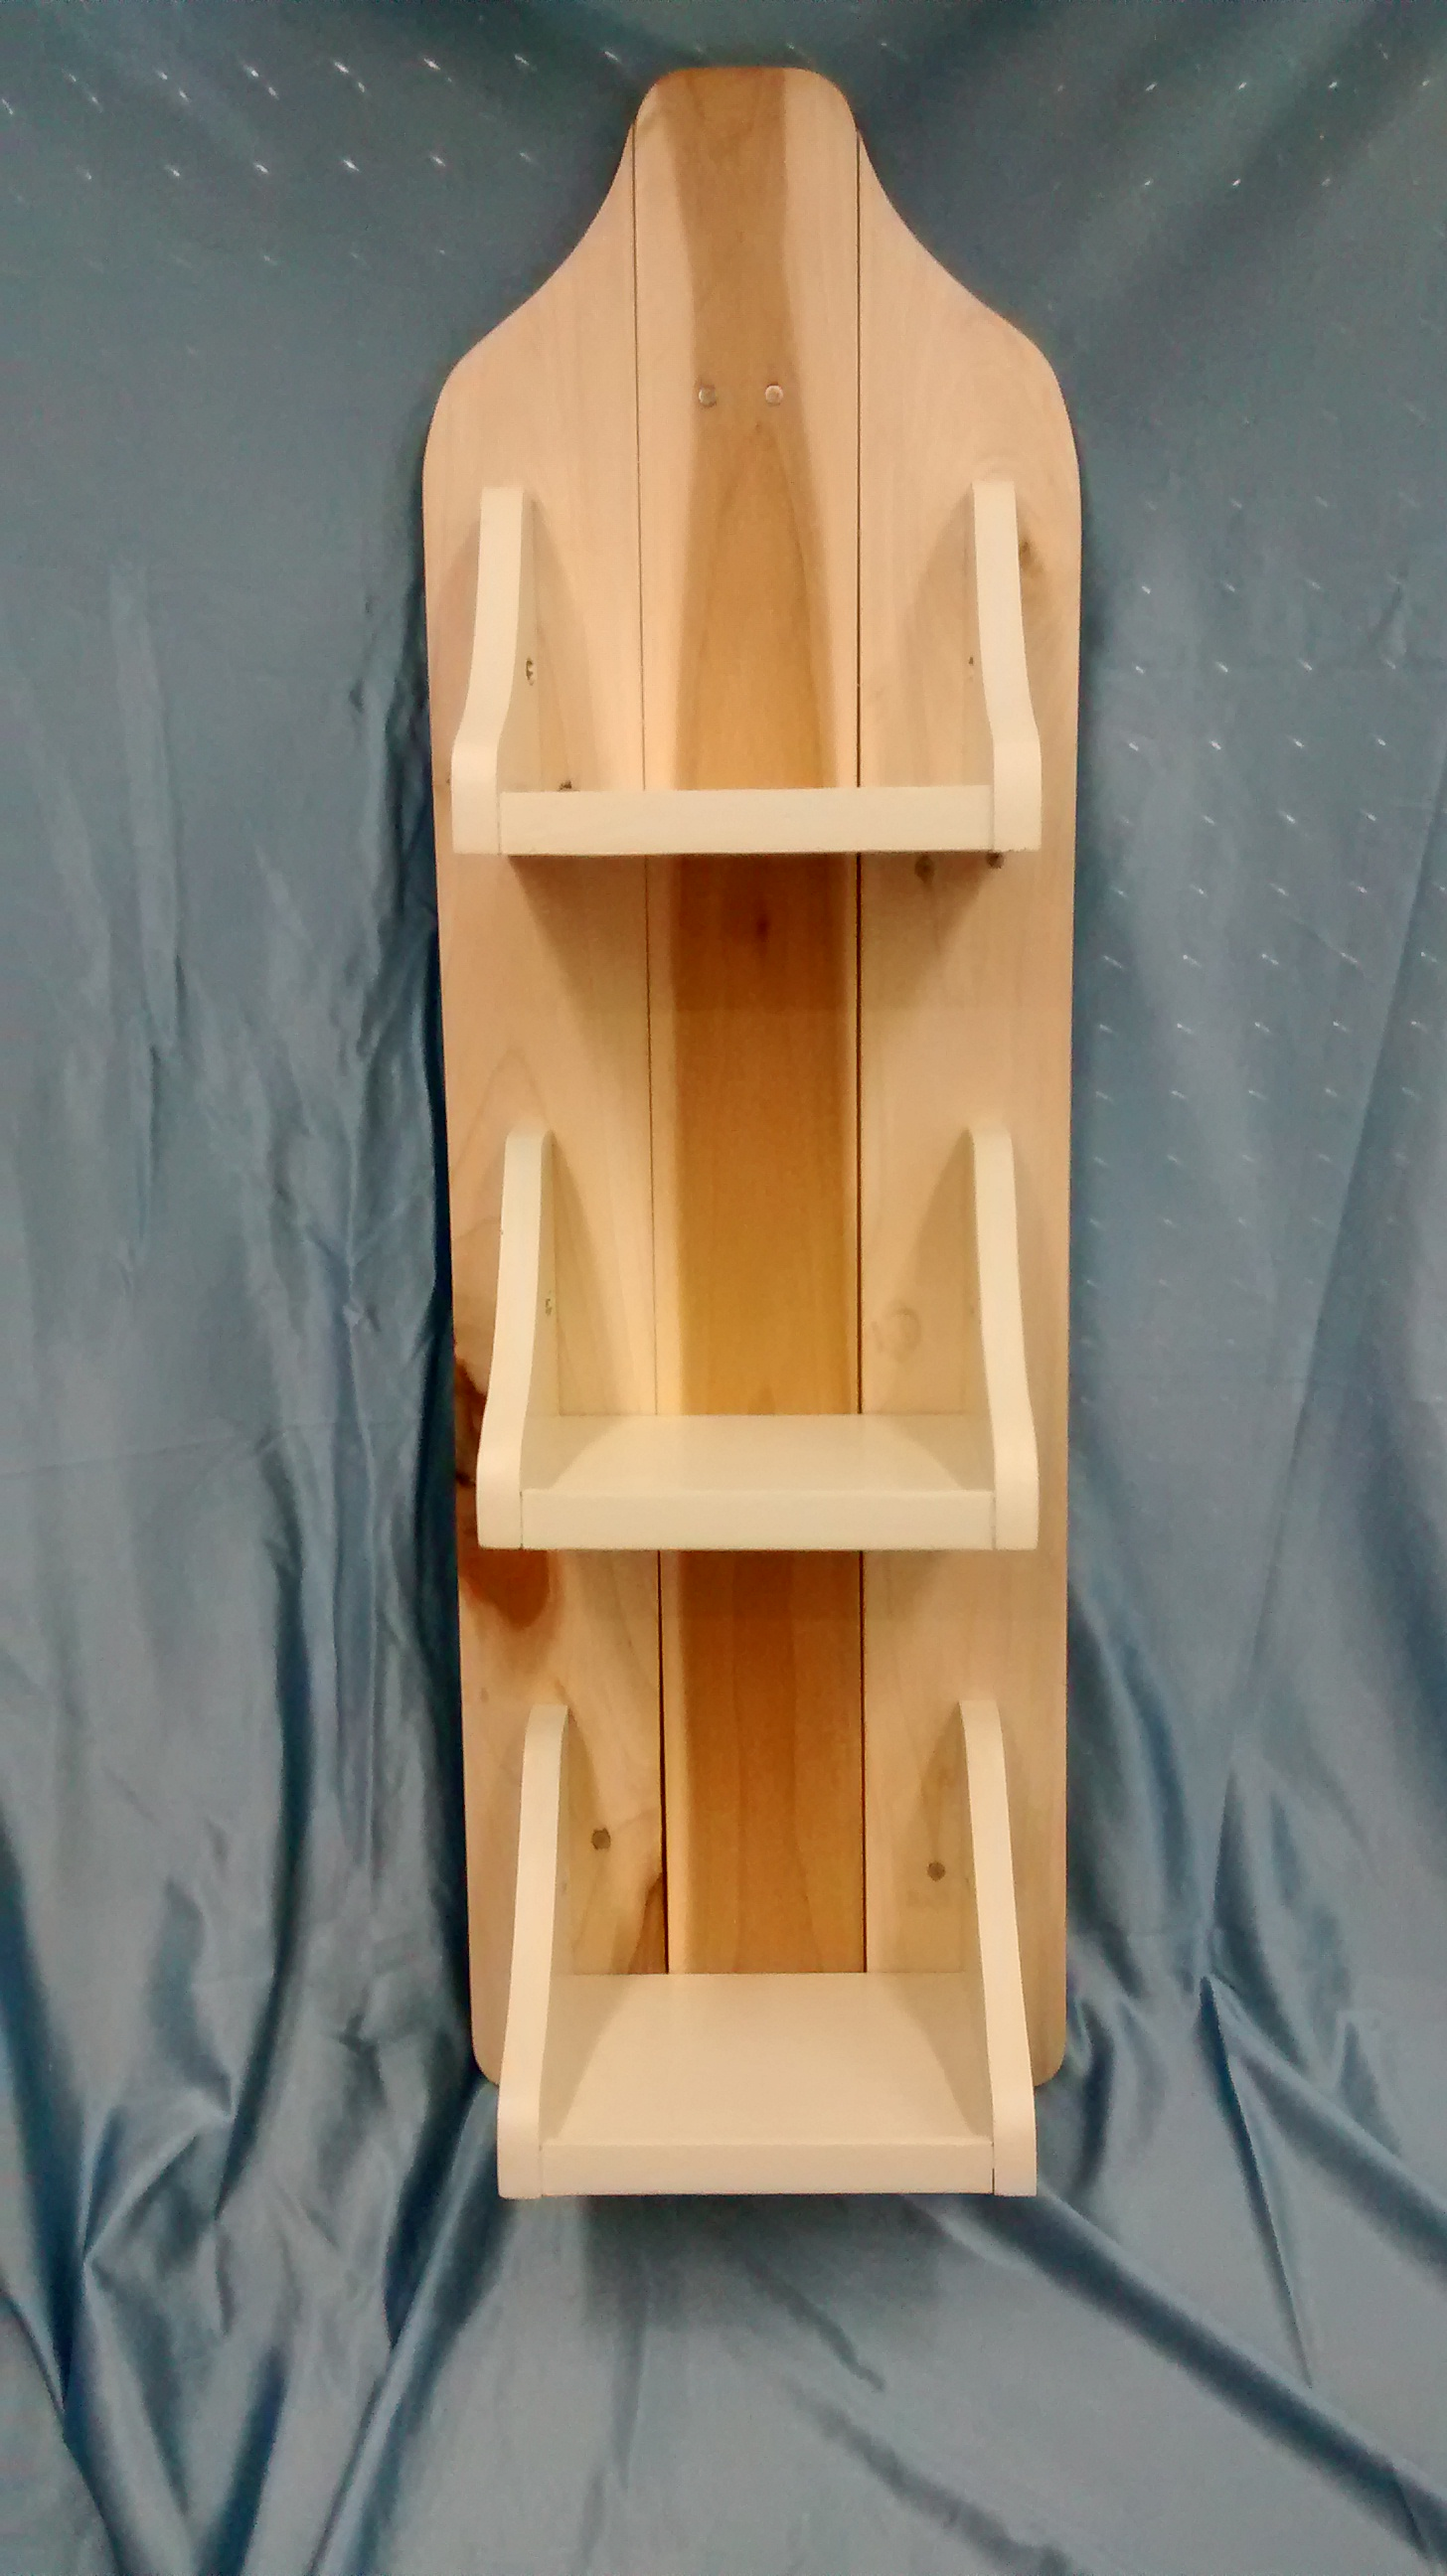 Three Small Shelves on Reclaimed Wood